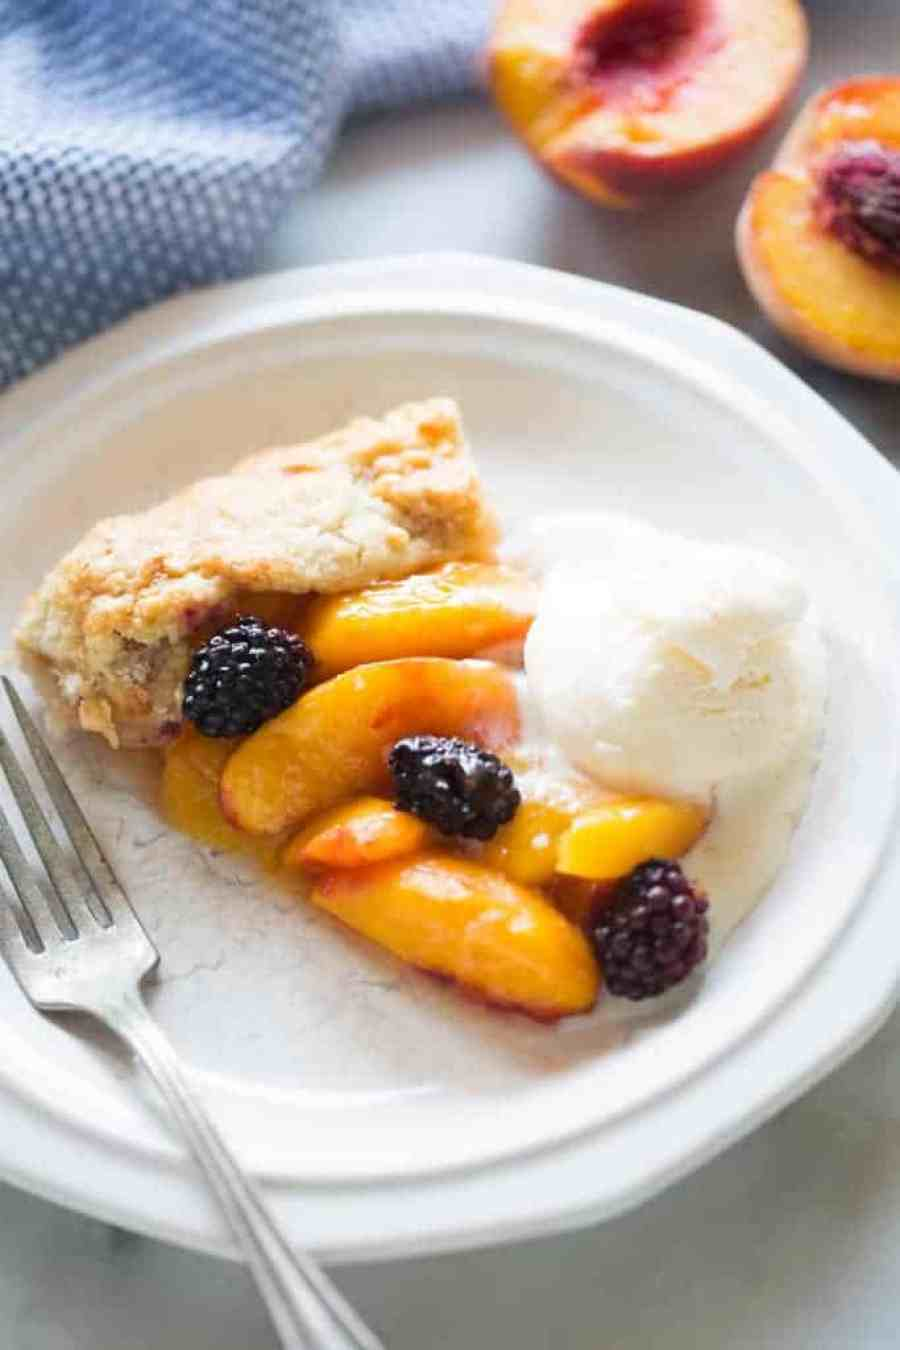 A delicious slice of Peach Blackberry Tart! This dessert couldn't be easier to make. The perfect dessert for using fresh peaches. | tastesbetterfromscratch.com